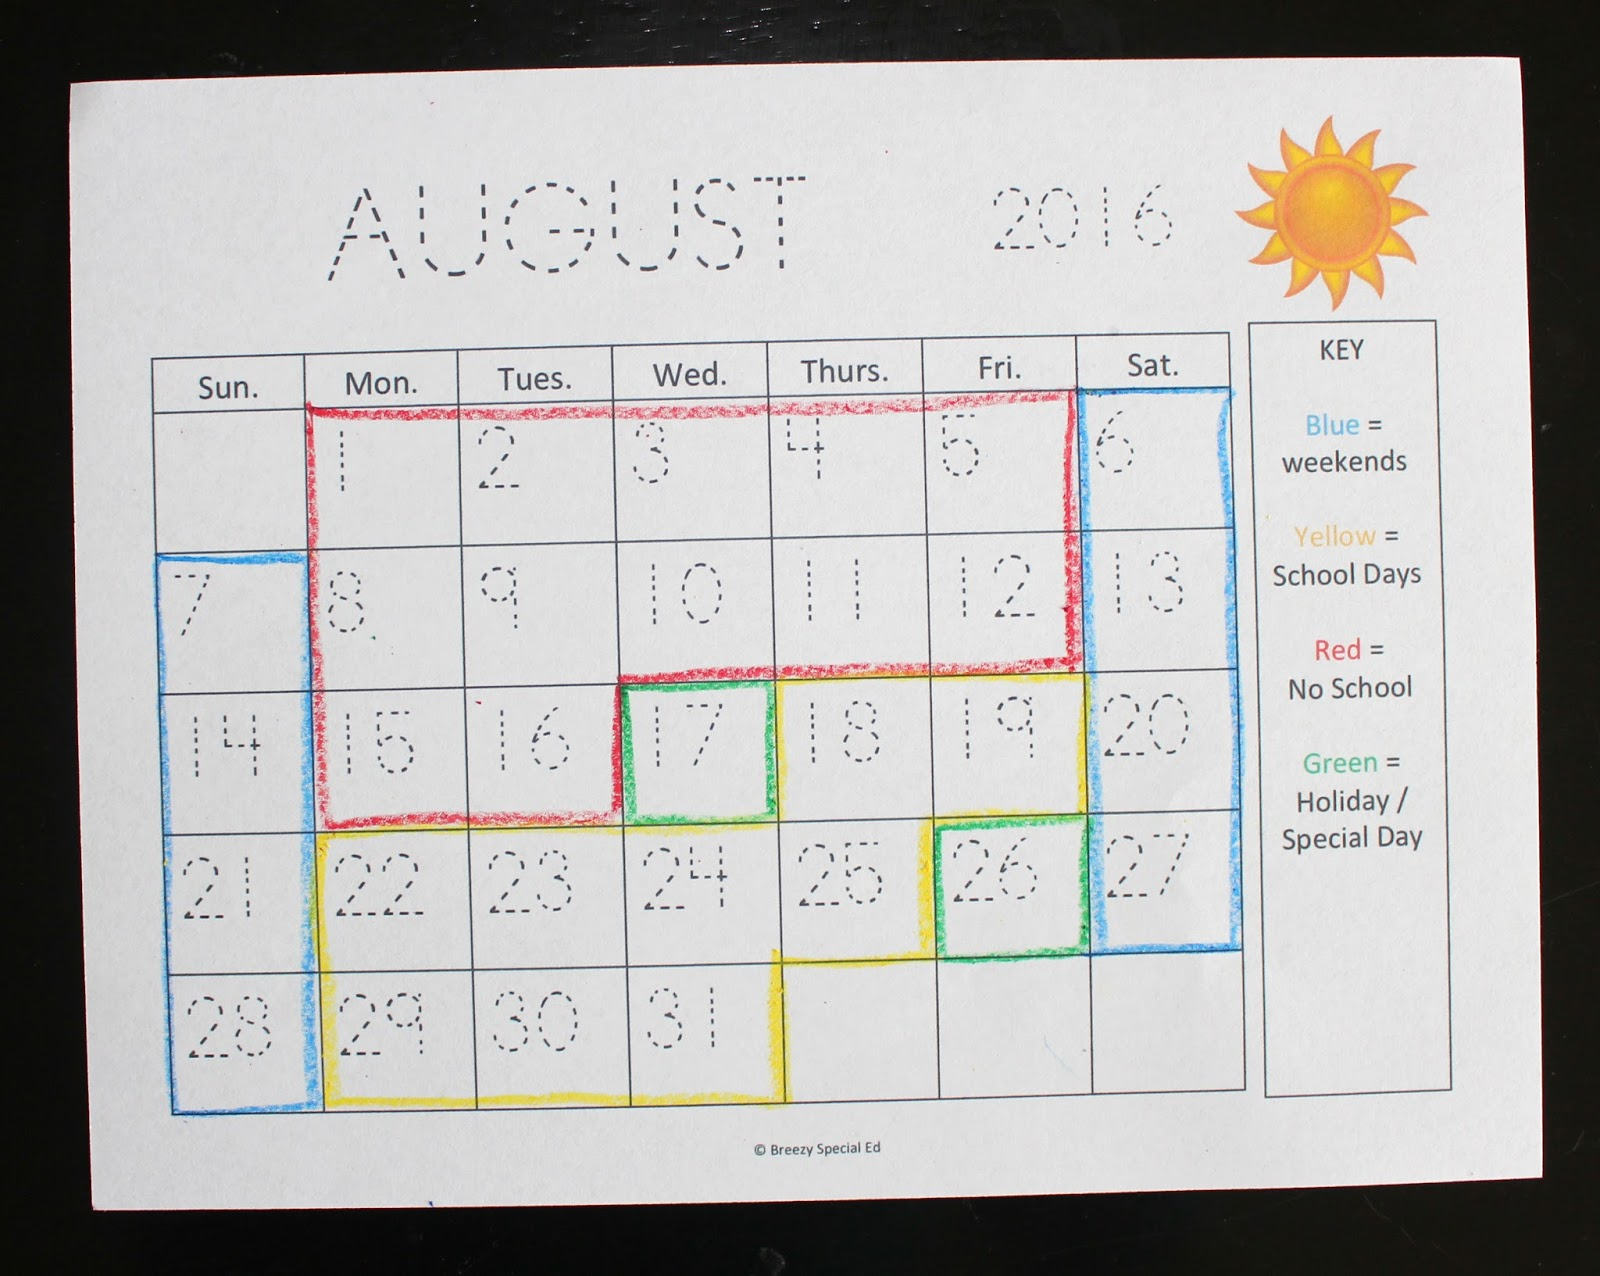 color coded calendar template - color coded calendar visual color coded calendars for